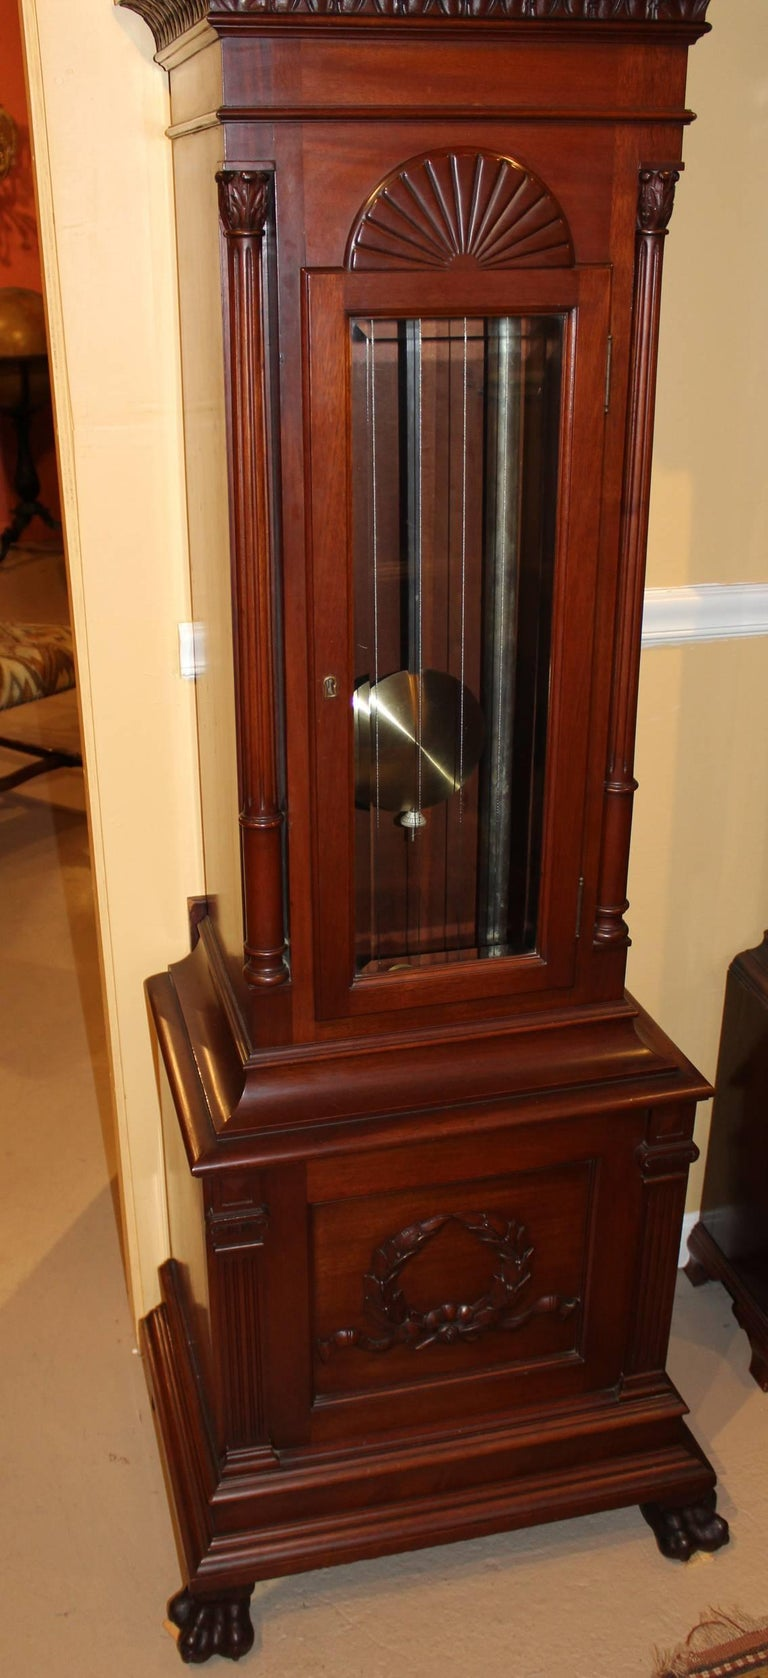 American Exceptional Smith Patterson & Co Boston Mahogany Tall Clock with Moon Phase Dial For Sale